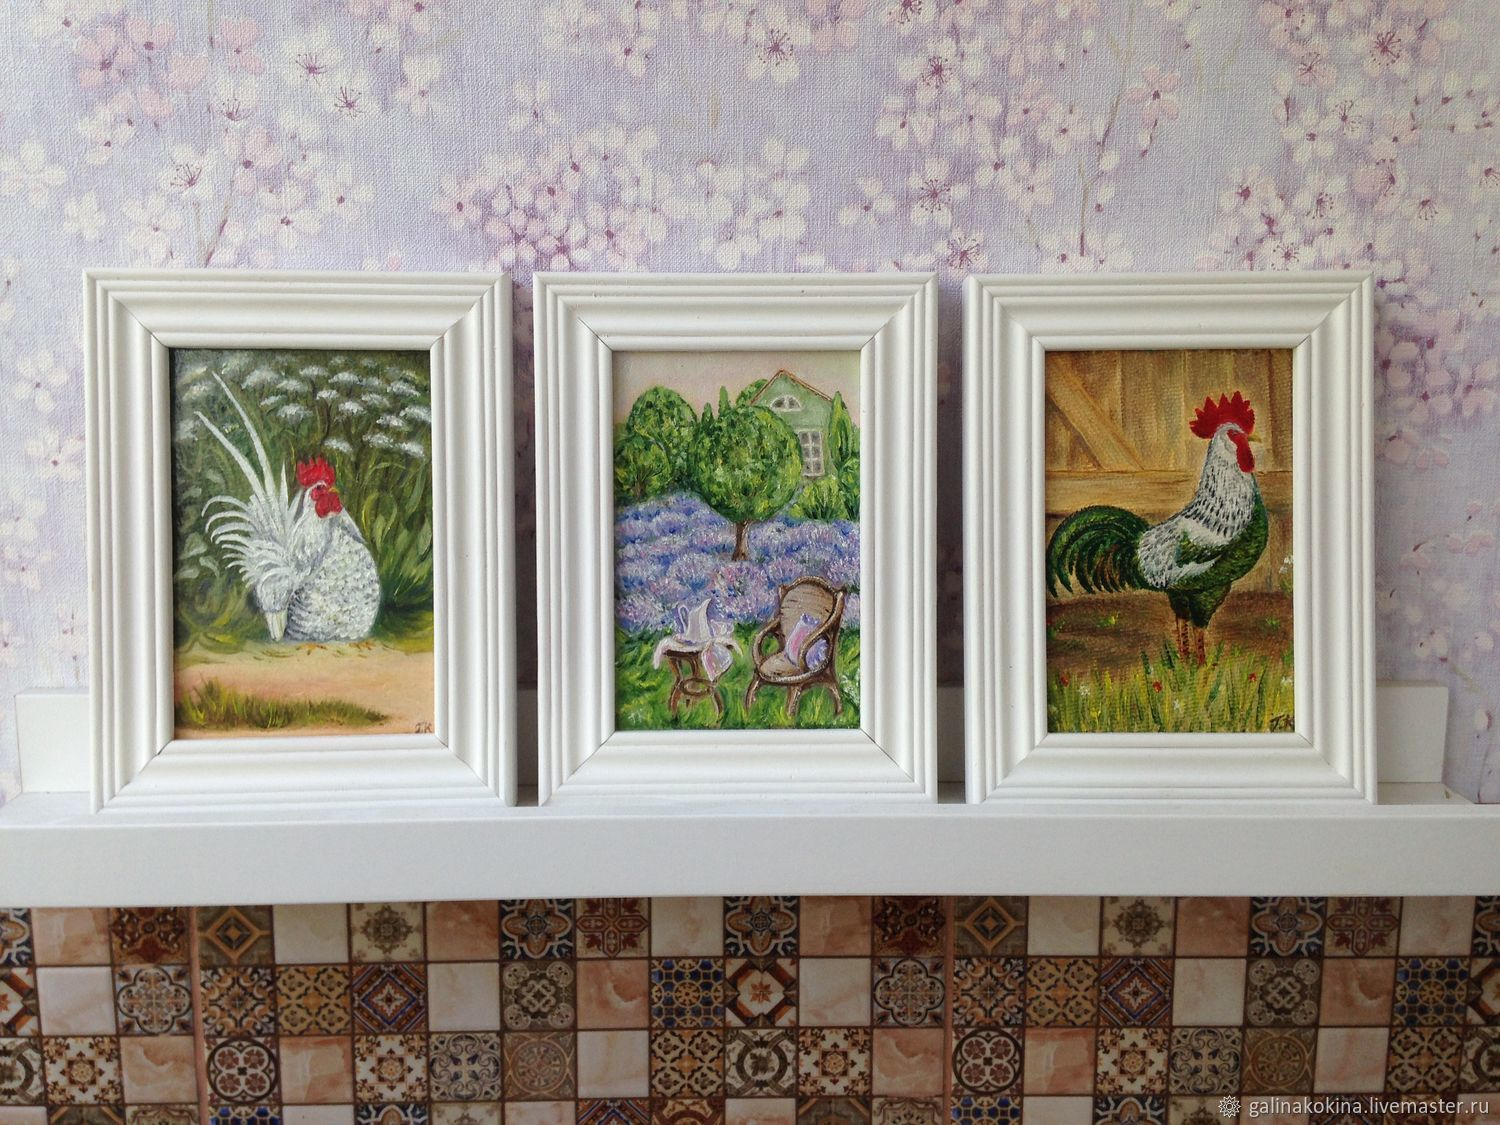 The Country set of three paintings size 10h15sm. each (size without frame). Oil painting, the surface is covered with a transparent lacquer, decorated in wood frame white color.